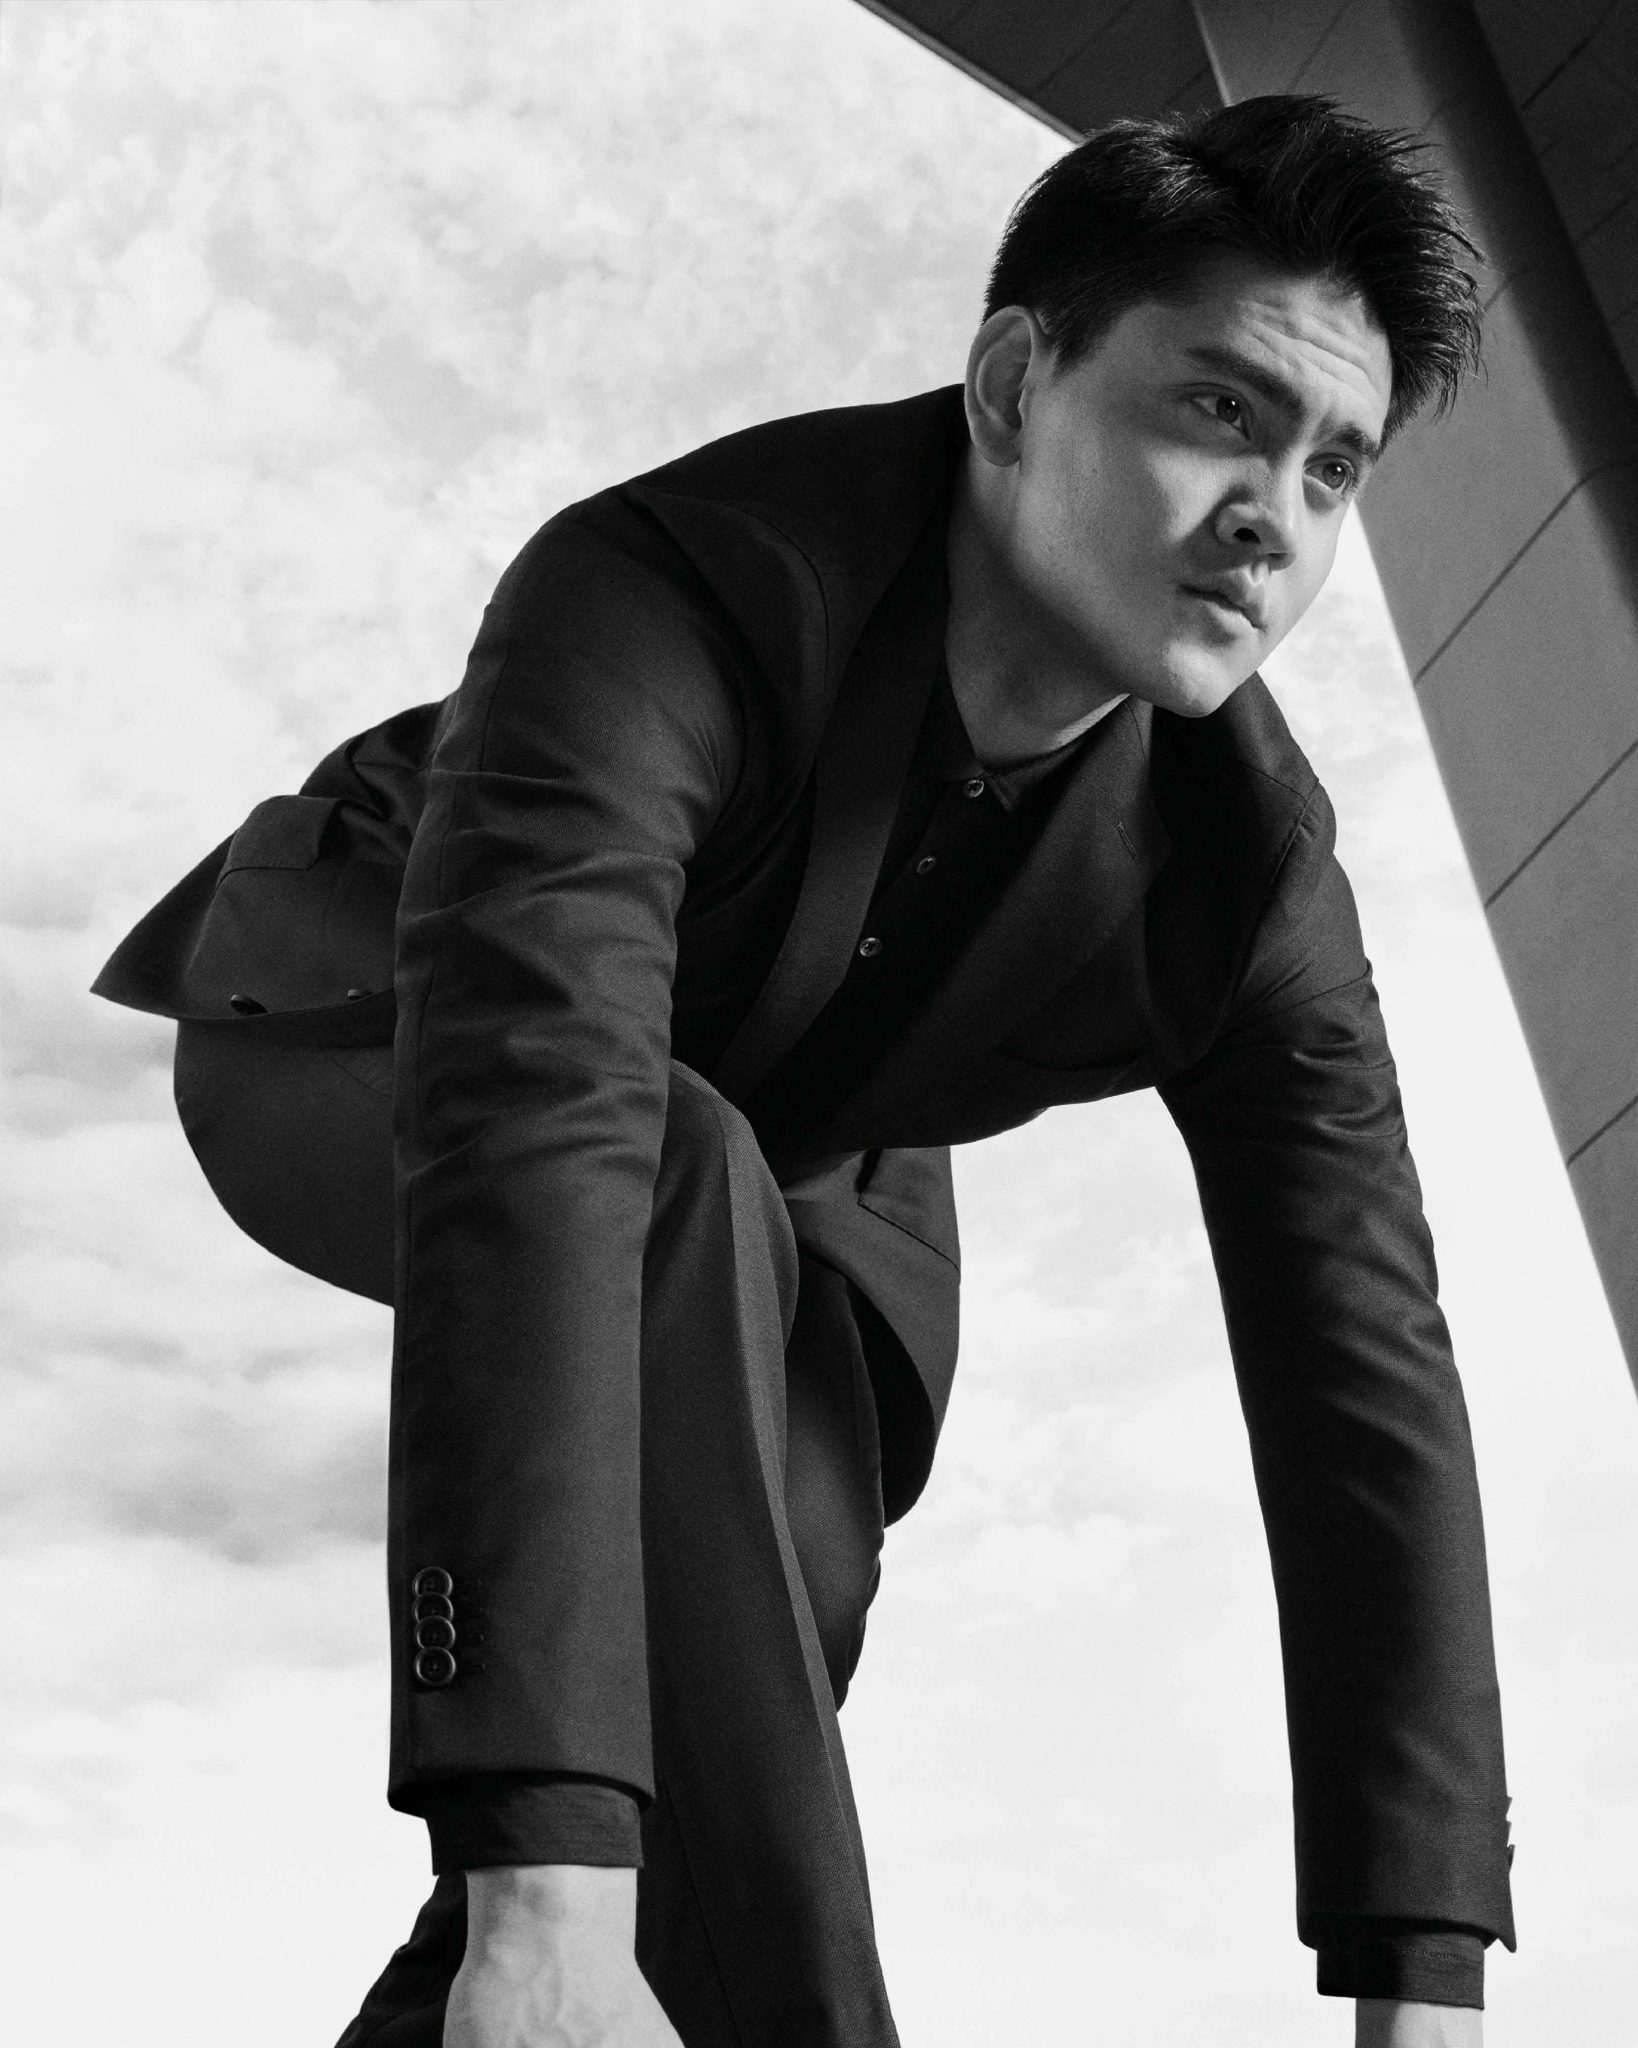 1c8ef41ee HUGO BOSS taps Joseph Schooling for their Washable Suit campaign